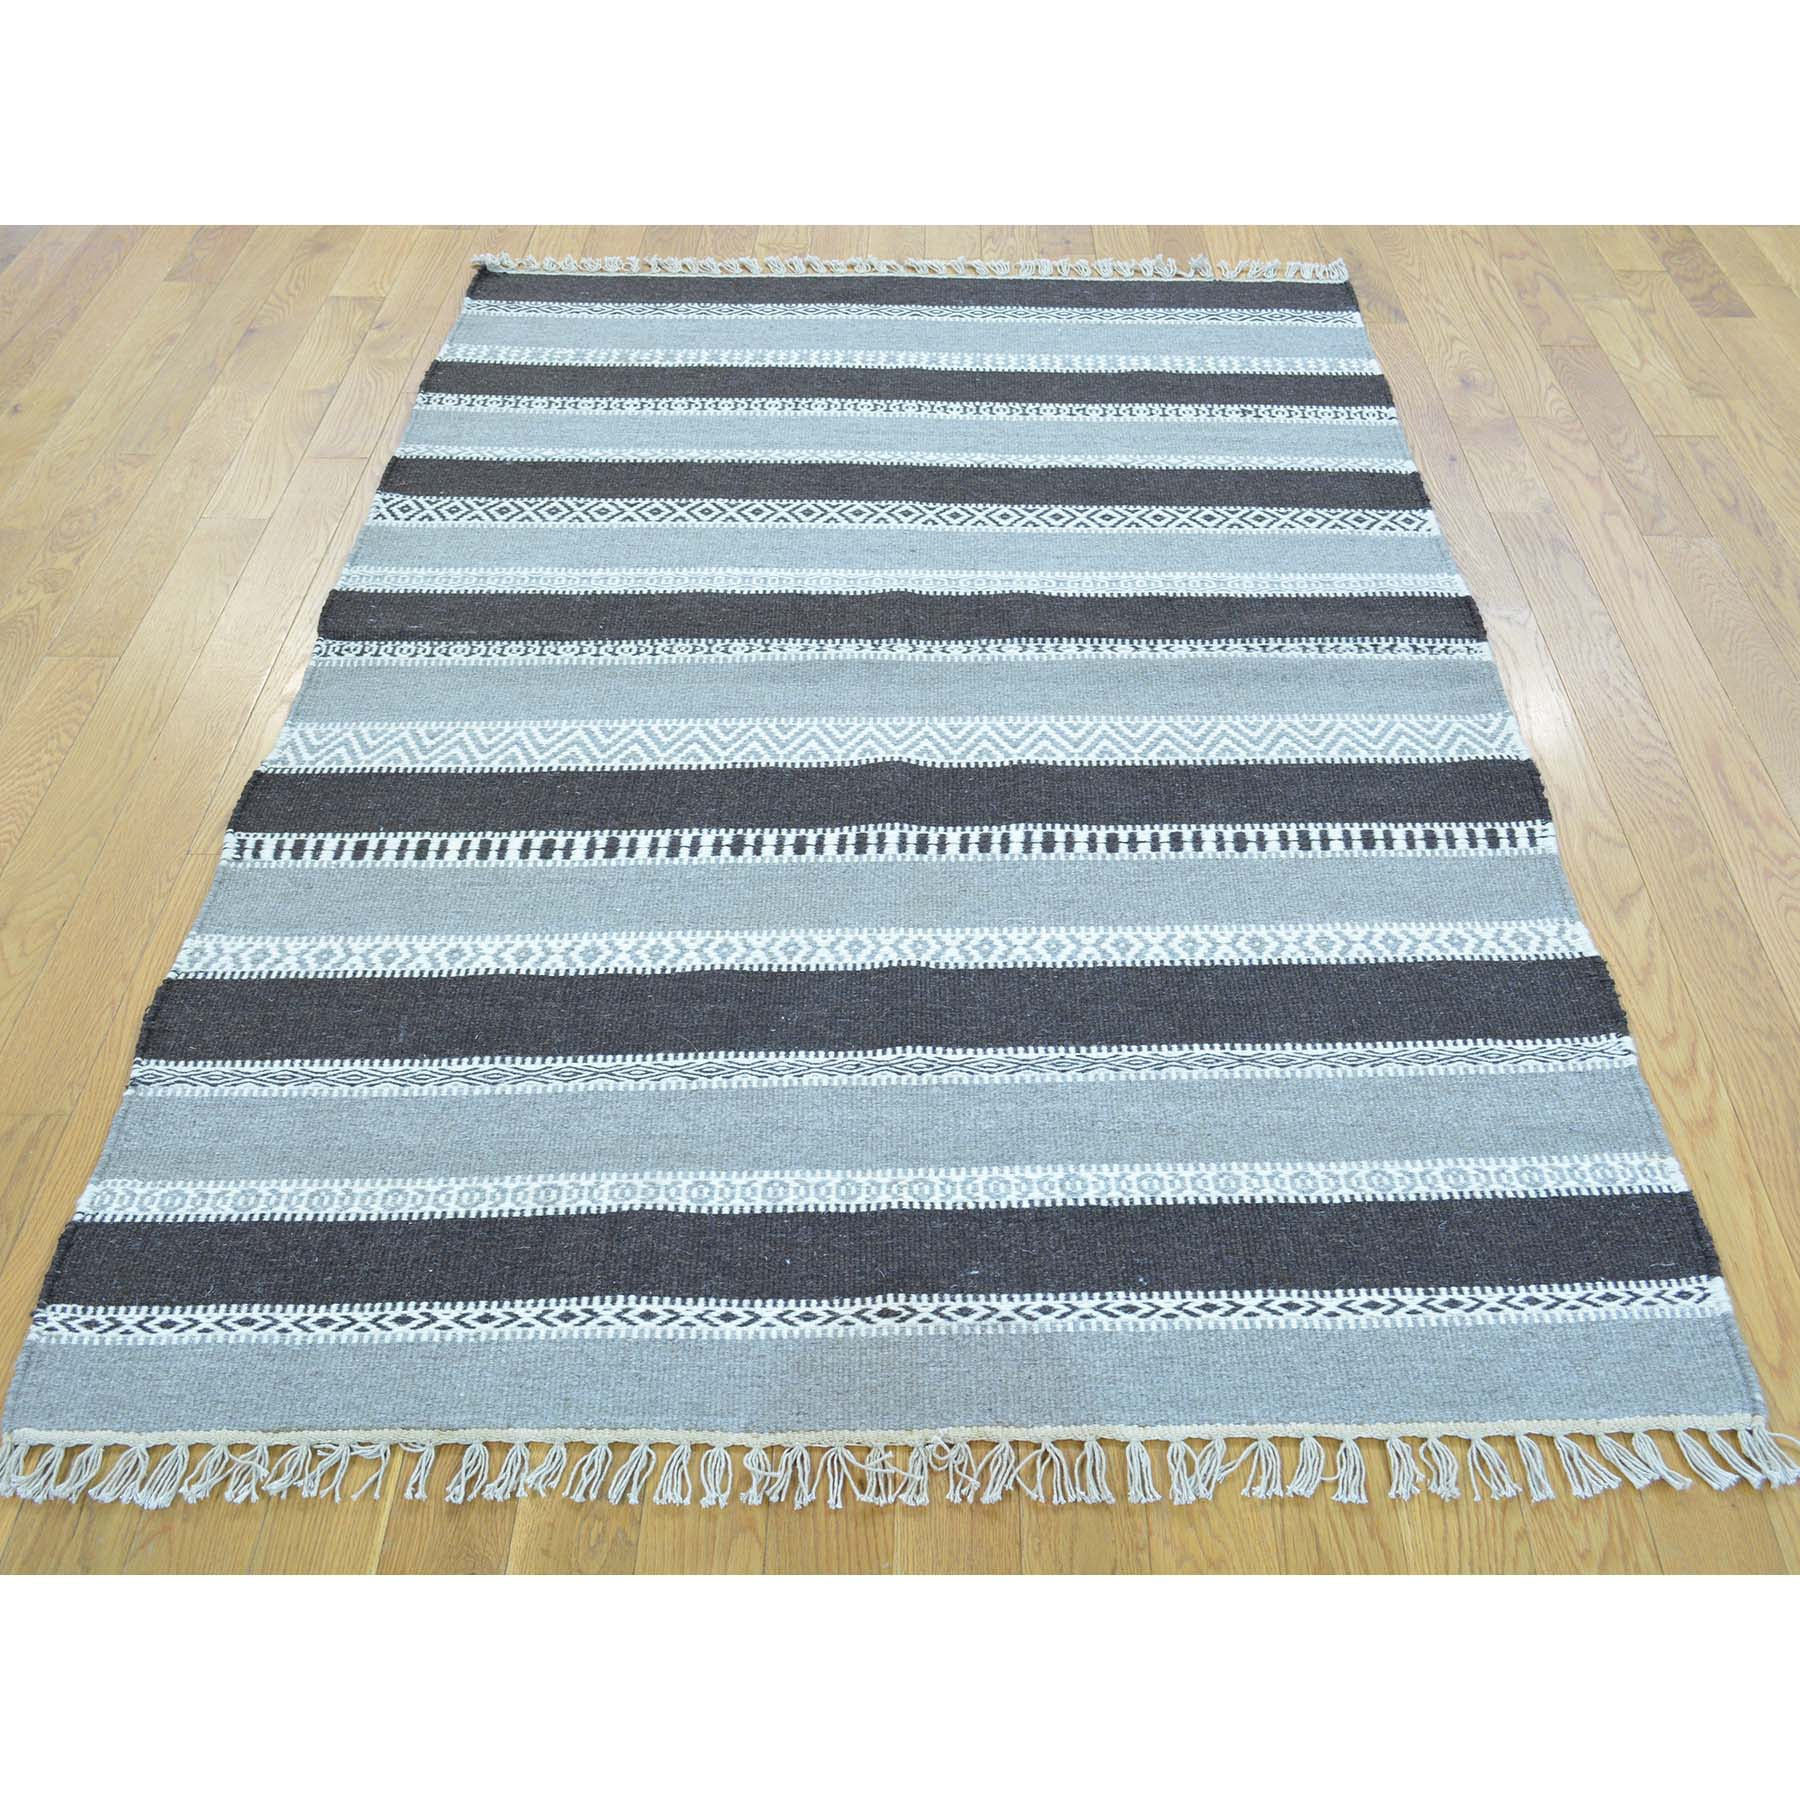 "Handmade Flat Weave Rectangle Rug > Design# SH30075 > Size: 4'-0"" x 6'-0"" [ONLINE ONLY]"